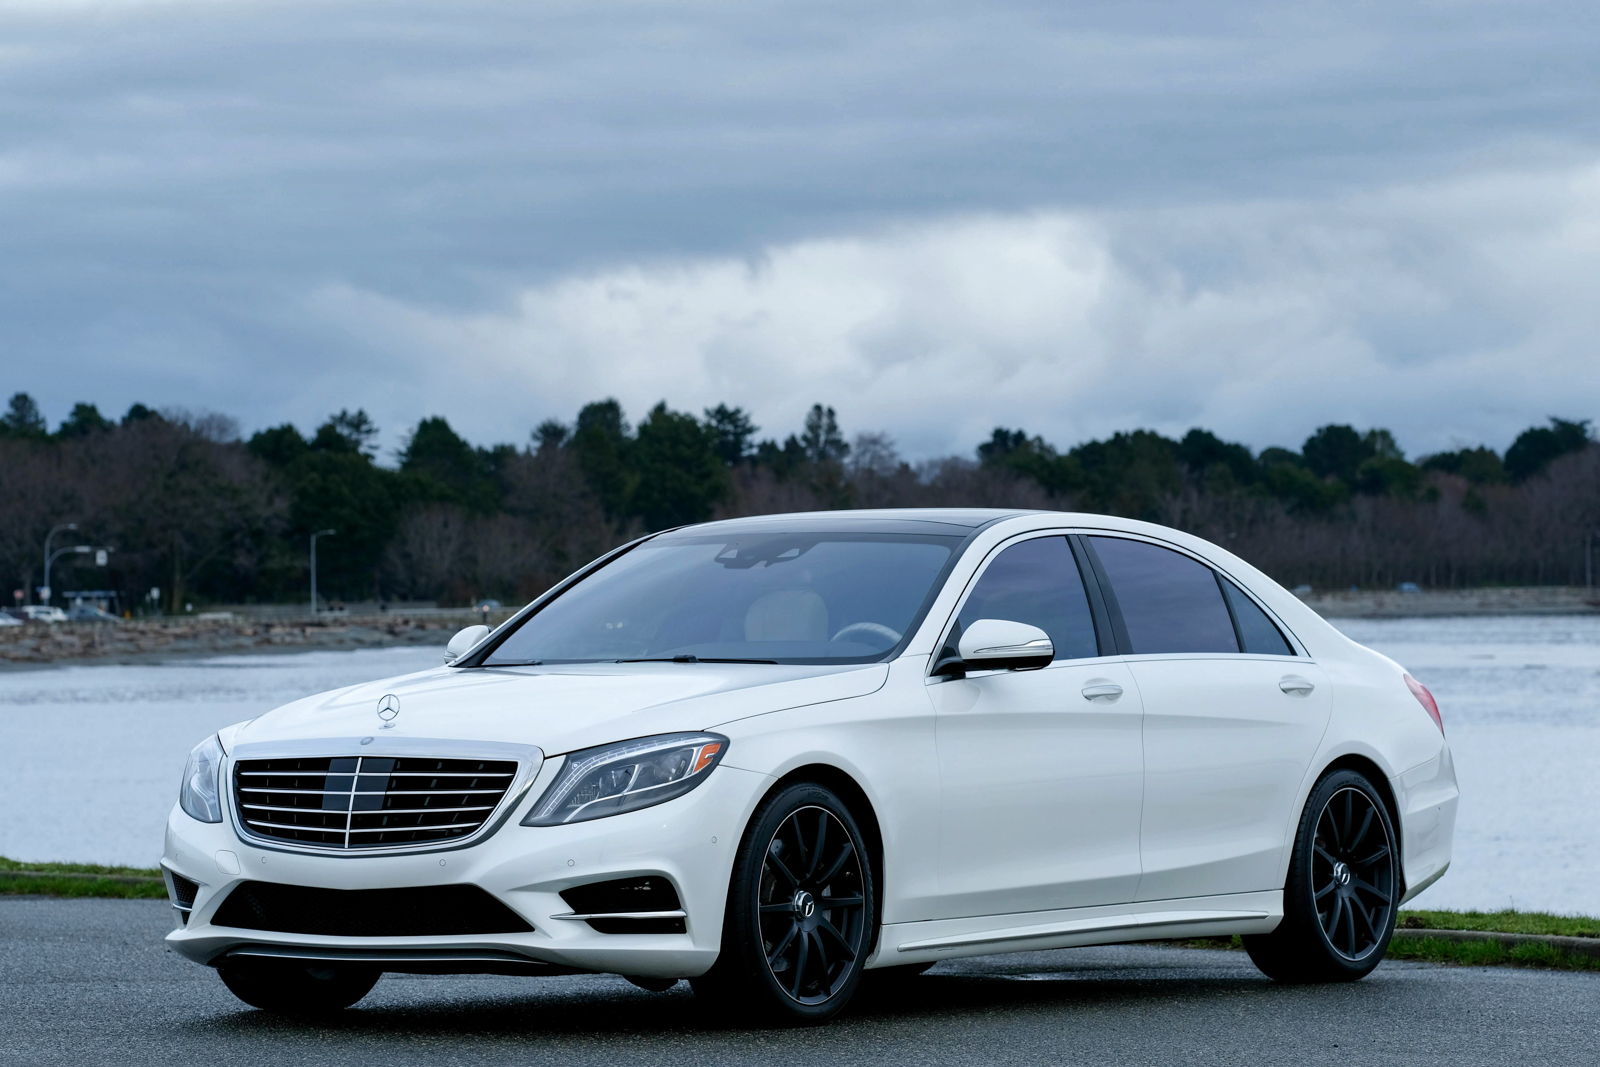 inventory class s all wheel new drive coupe benz mercedes